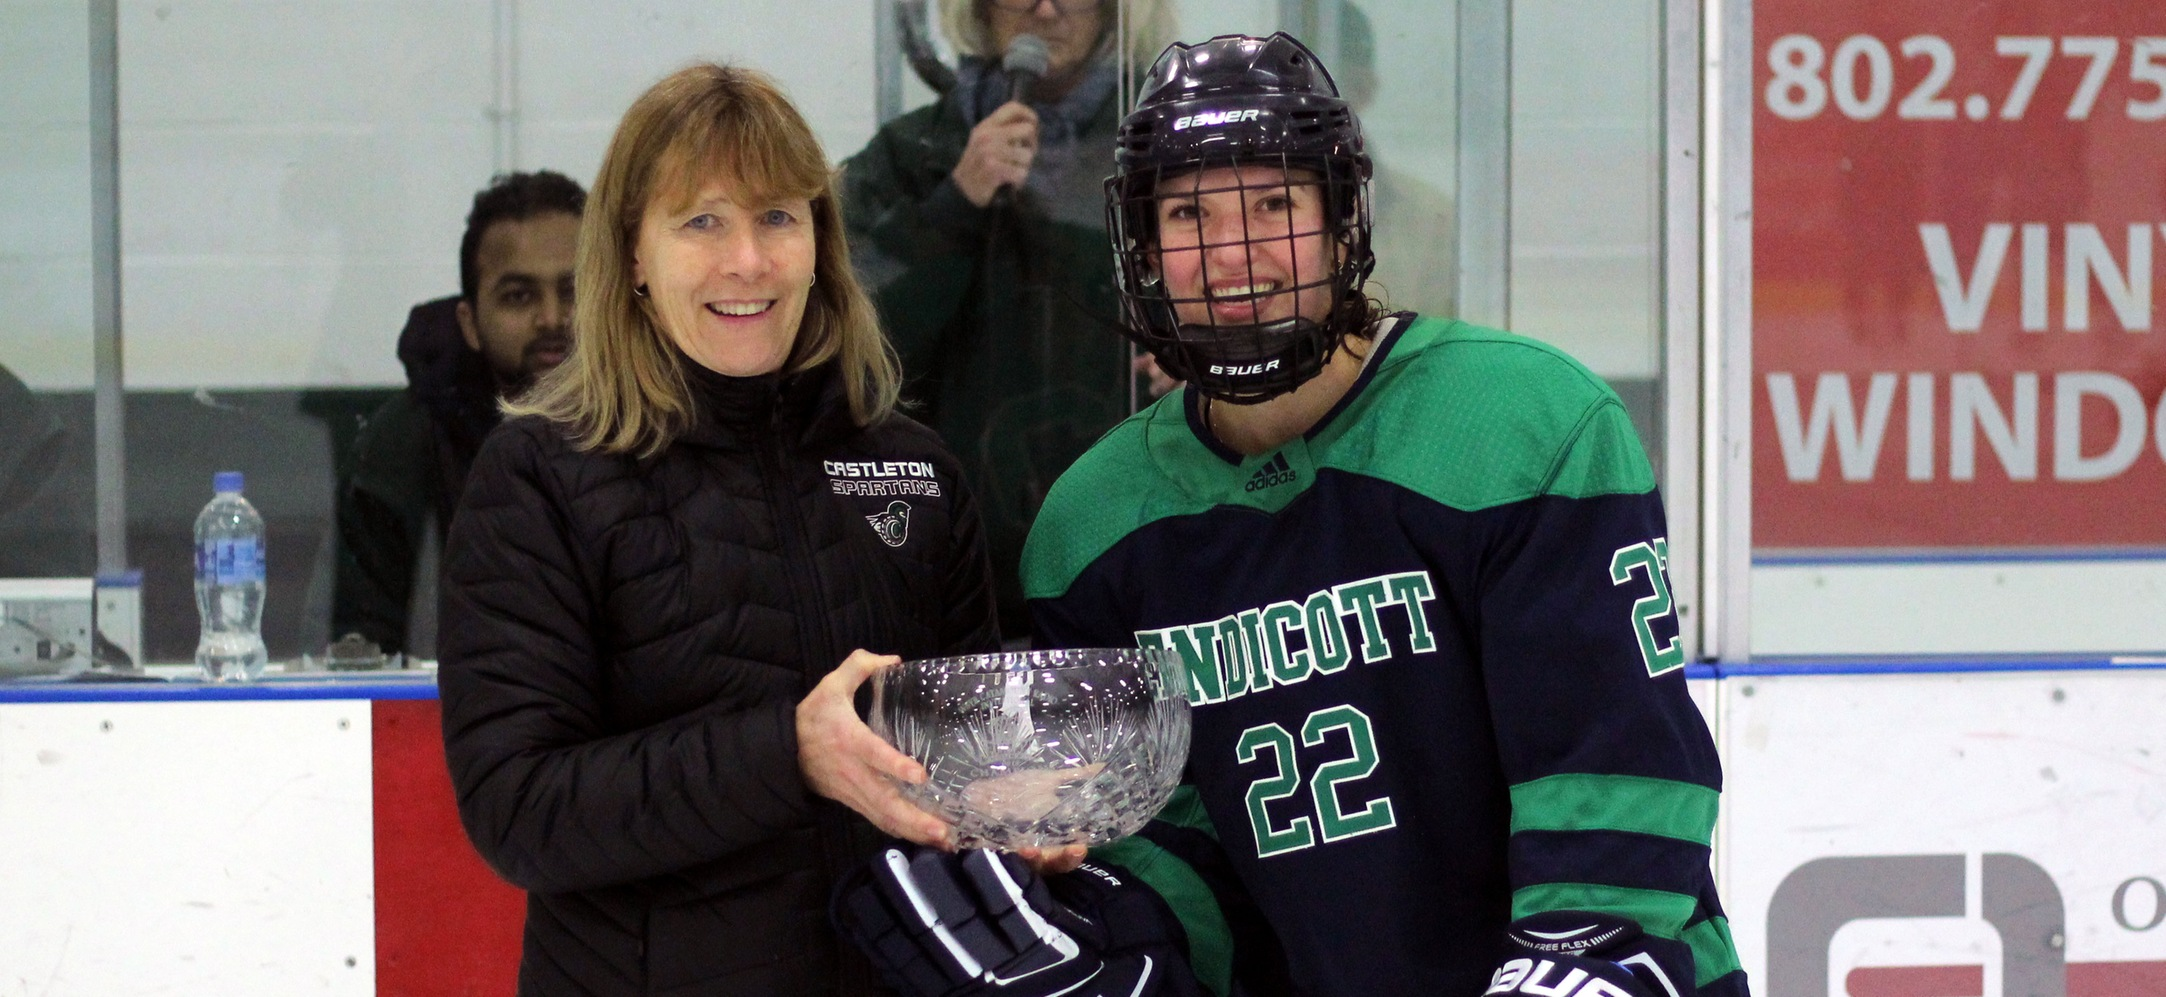 Courtney Walpole accepts the WSYB/Catamount Radio Invitational championship trophy on behalf of the Endicott women's ice hockey team.